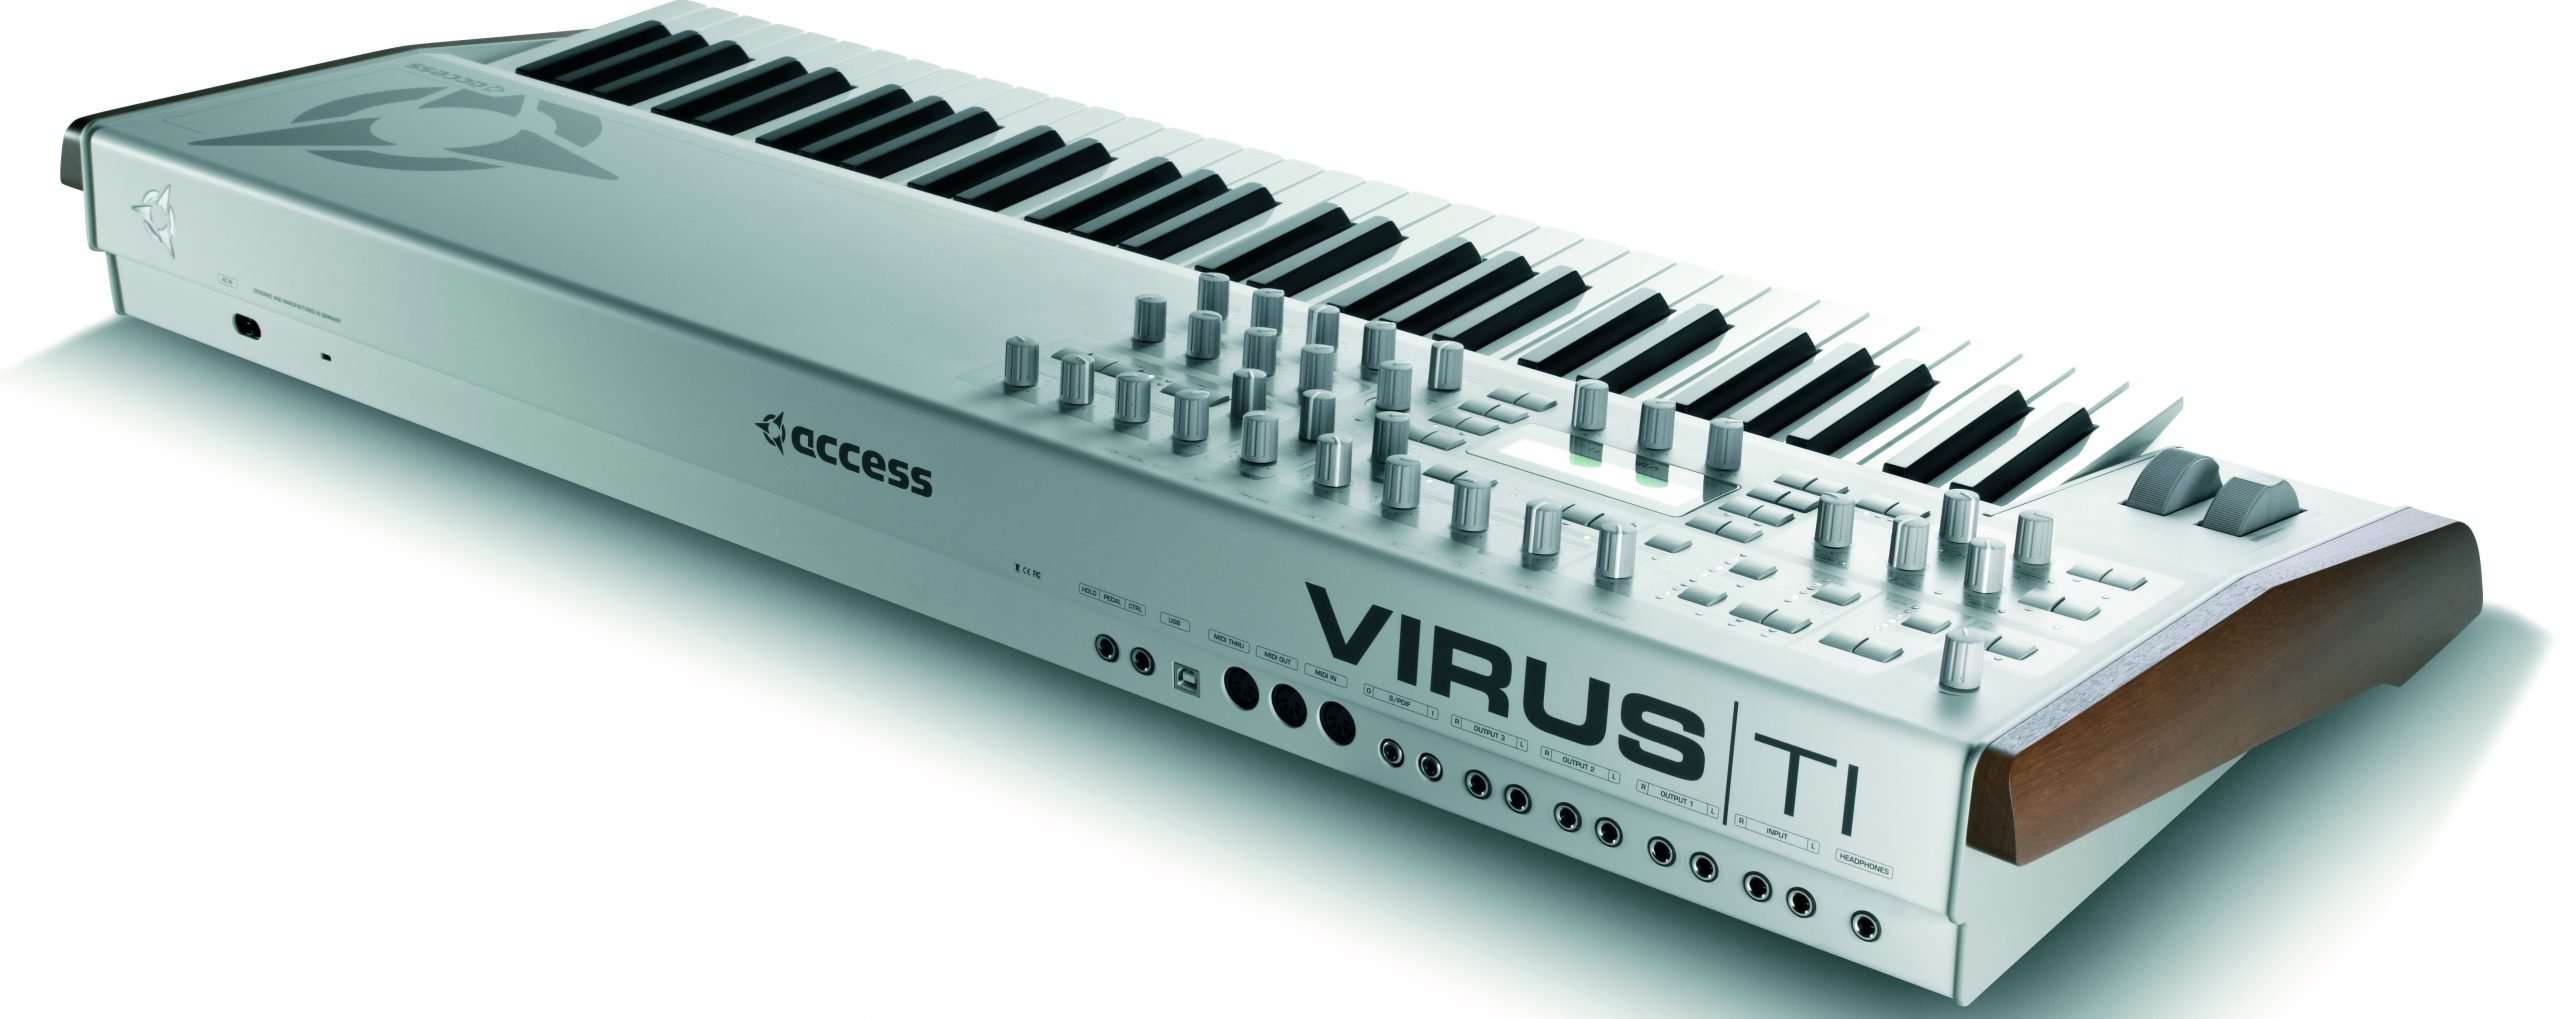 Access Virus Ti series